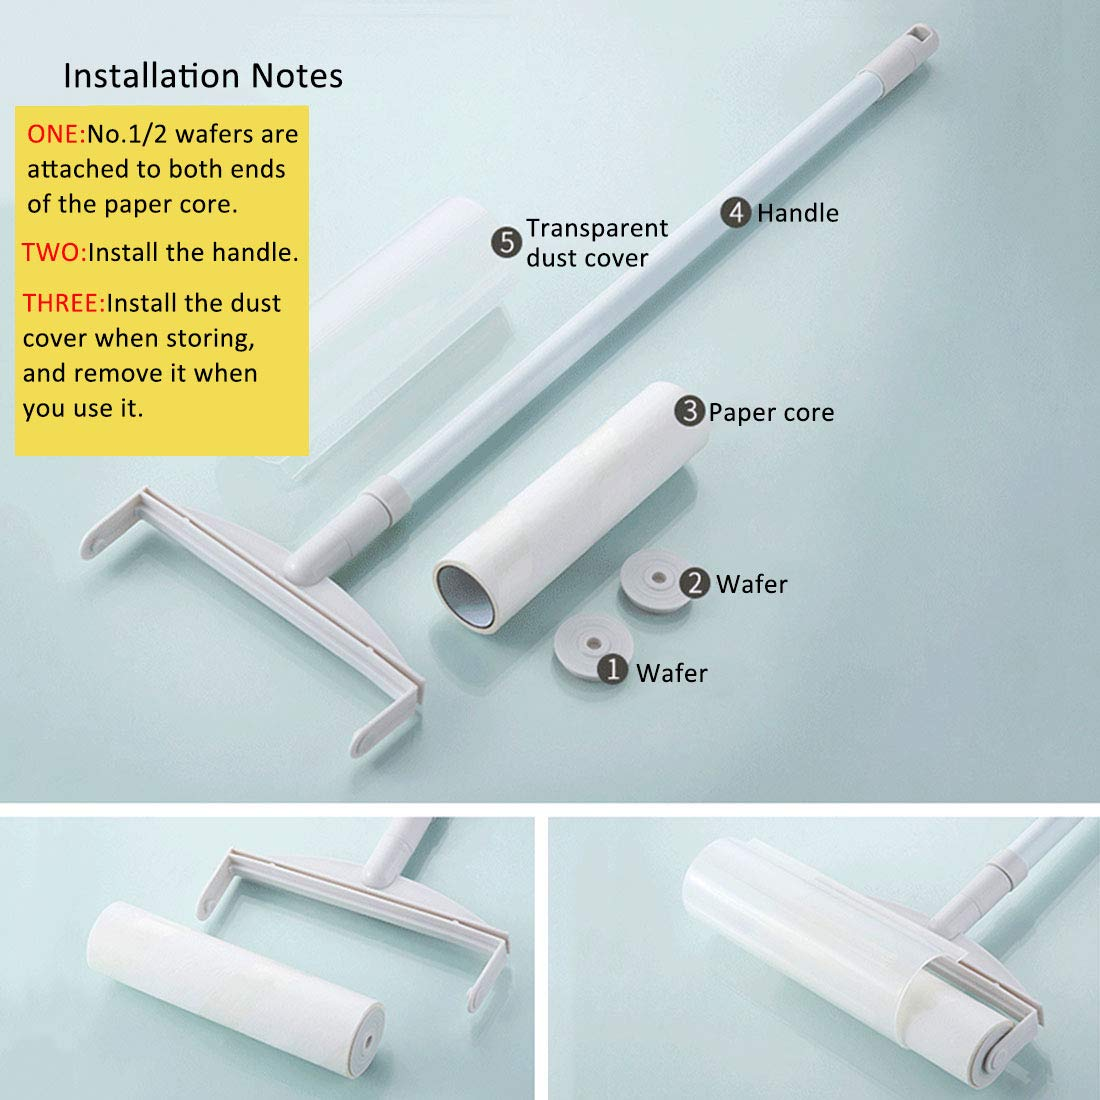 XINGYUE Lint Roller Pet Hair Lint Removers with Long Handle for Clothes Animal Car by XINGYUE (Image #8)